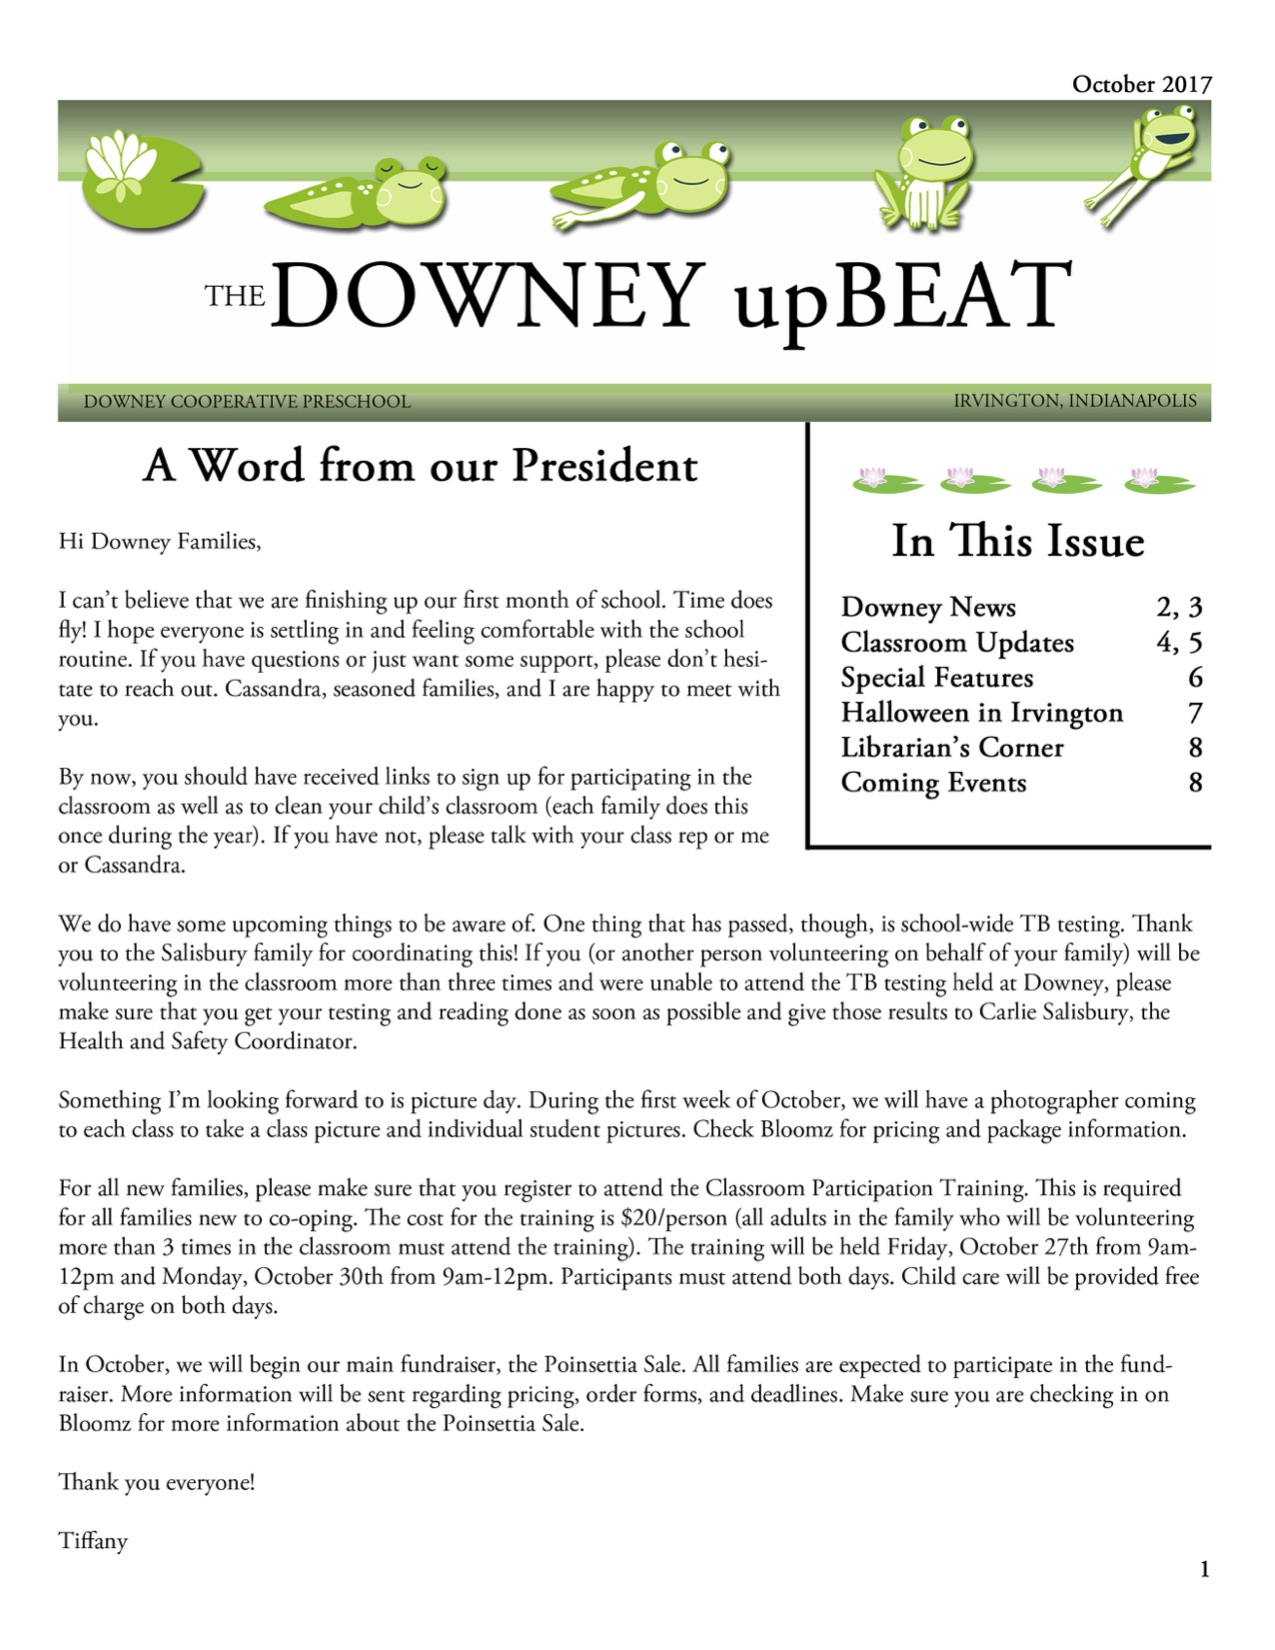 October 2018 Newsletter – Downey Cooperative Preschool AND